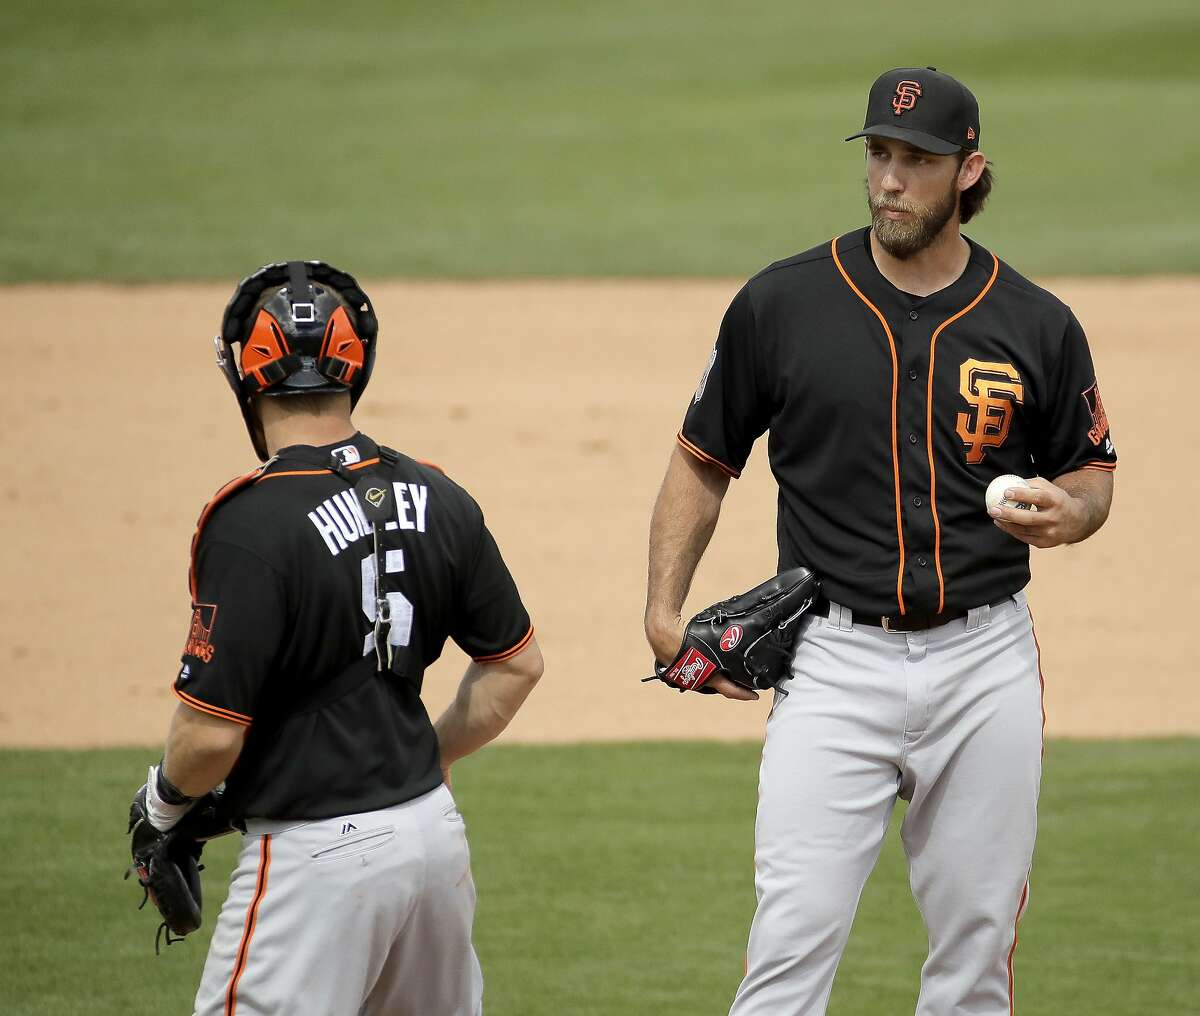 San Francisco Giants starting pitcher Madison Bumgarner and catcher Nick Hundley (5) meet on the mound during the second inning of a spring training baseball game against the San Diego Padres Tuesday, Feb. 28, 2017, in Peoria, Ariz. (AP Photo/Charlie Riedel)